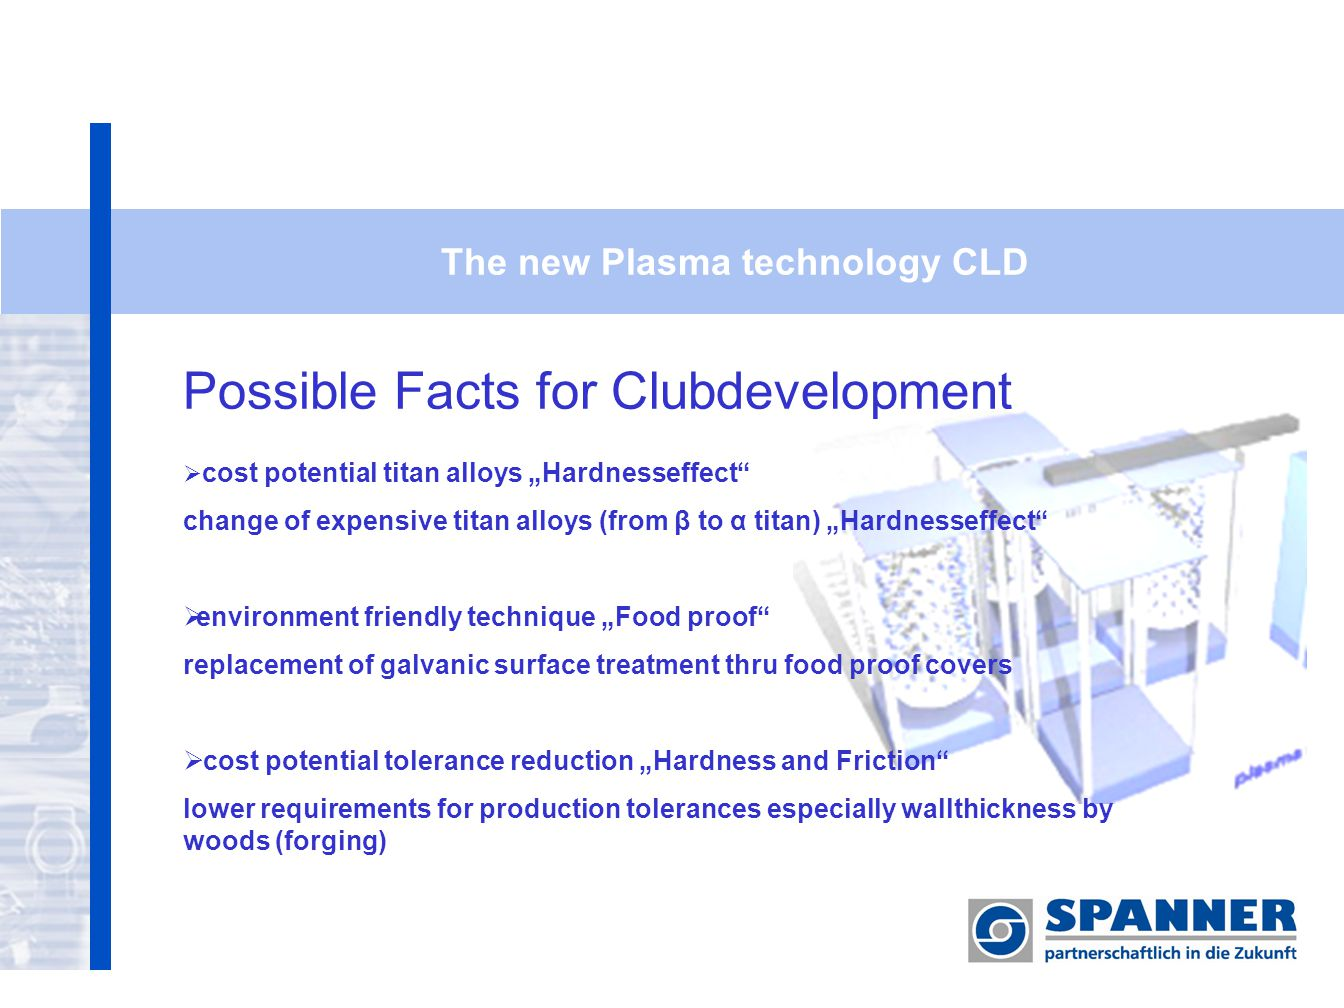 The new Plasma technology CLD Possible Facts for Clubdevelopment cost potential titan alloys Hardnesseffect change of expensive titan alloys (from β to α titan) Hardnesseffect environment friendly technique Food proof replacement of galvanic surface treatment thru food proof covers cost potential tolerance reduction Hardness and Friction lower requirements for production tolerances especially wallthickness by woods (forging)